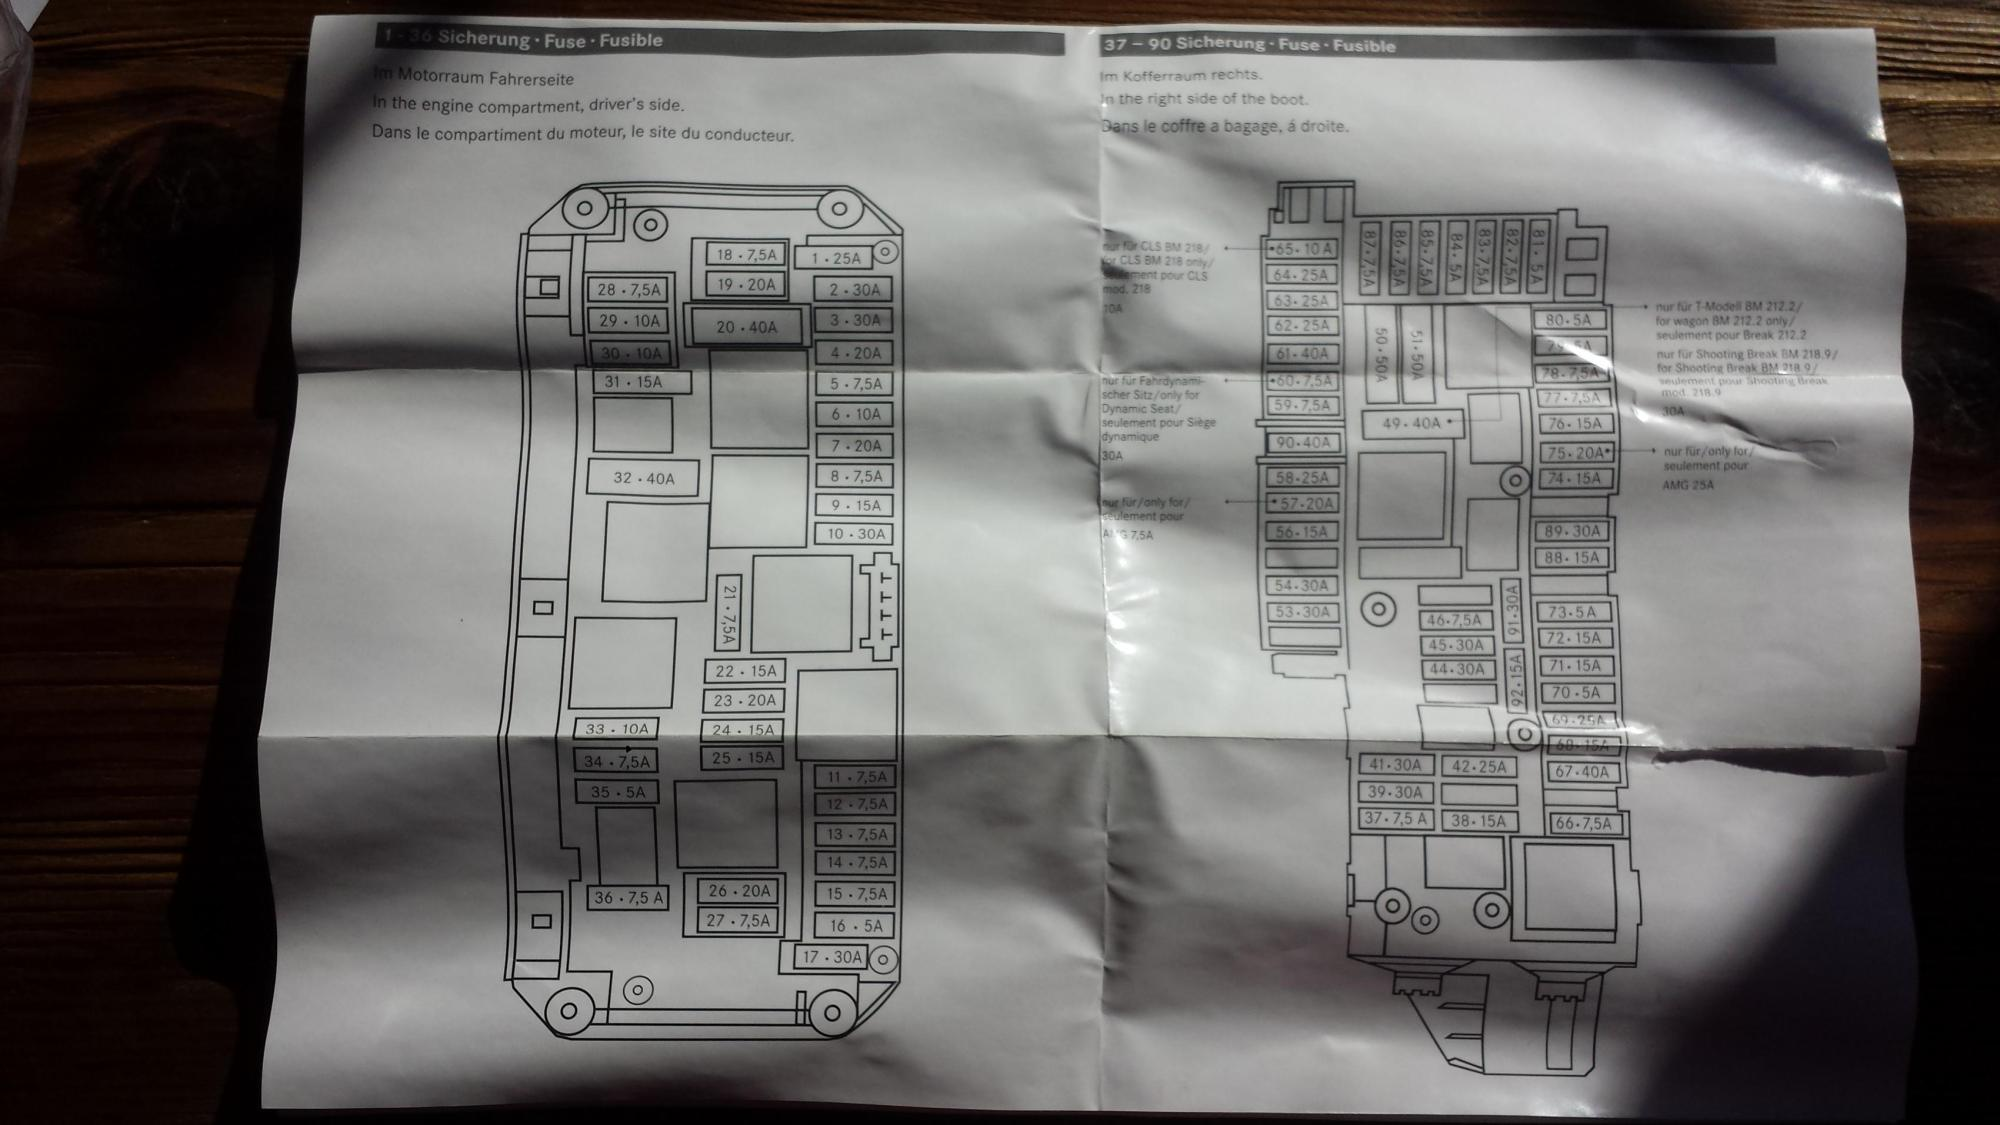 hight resolution of 2013 e350 fuse diagram layout wiring diagrams u2022 rh laurafinlay co uk 1999 ford econoline e150